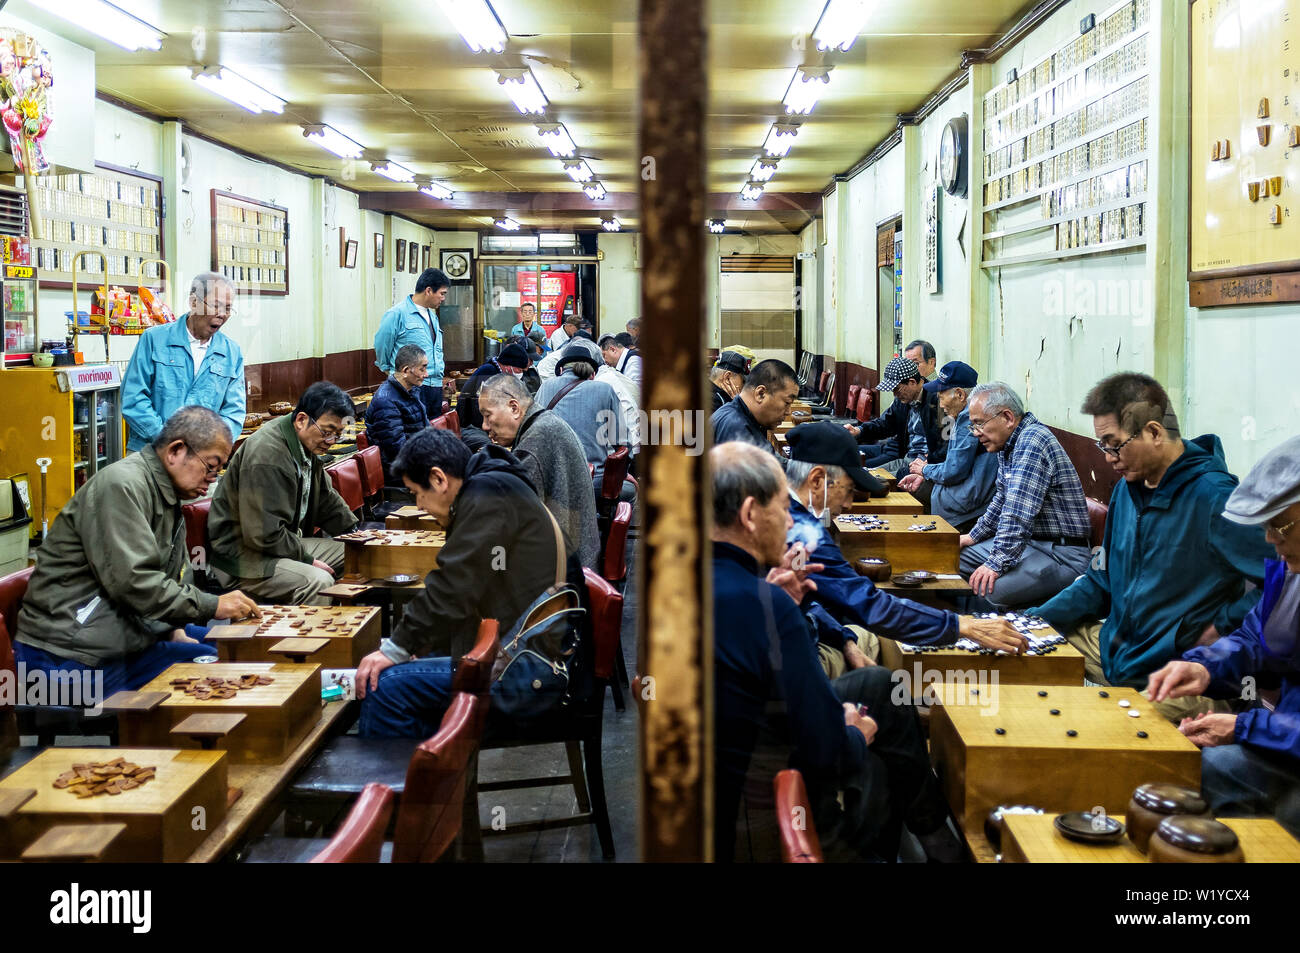 April 18, 2019: Japanese men playing a traditional Japanese game on a bar - Stock Image